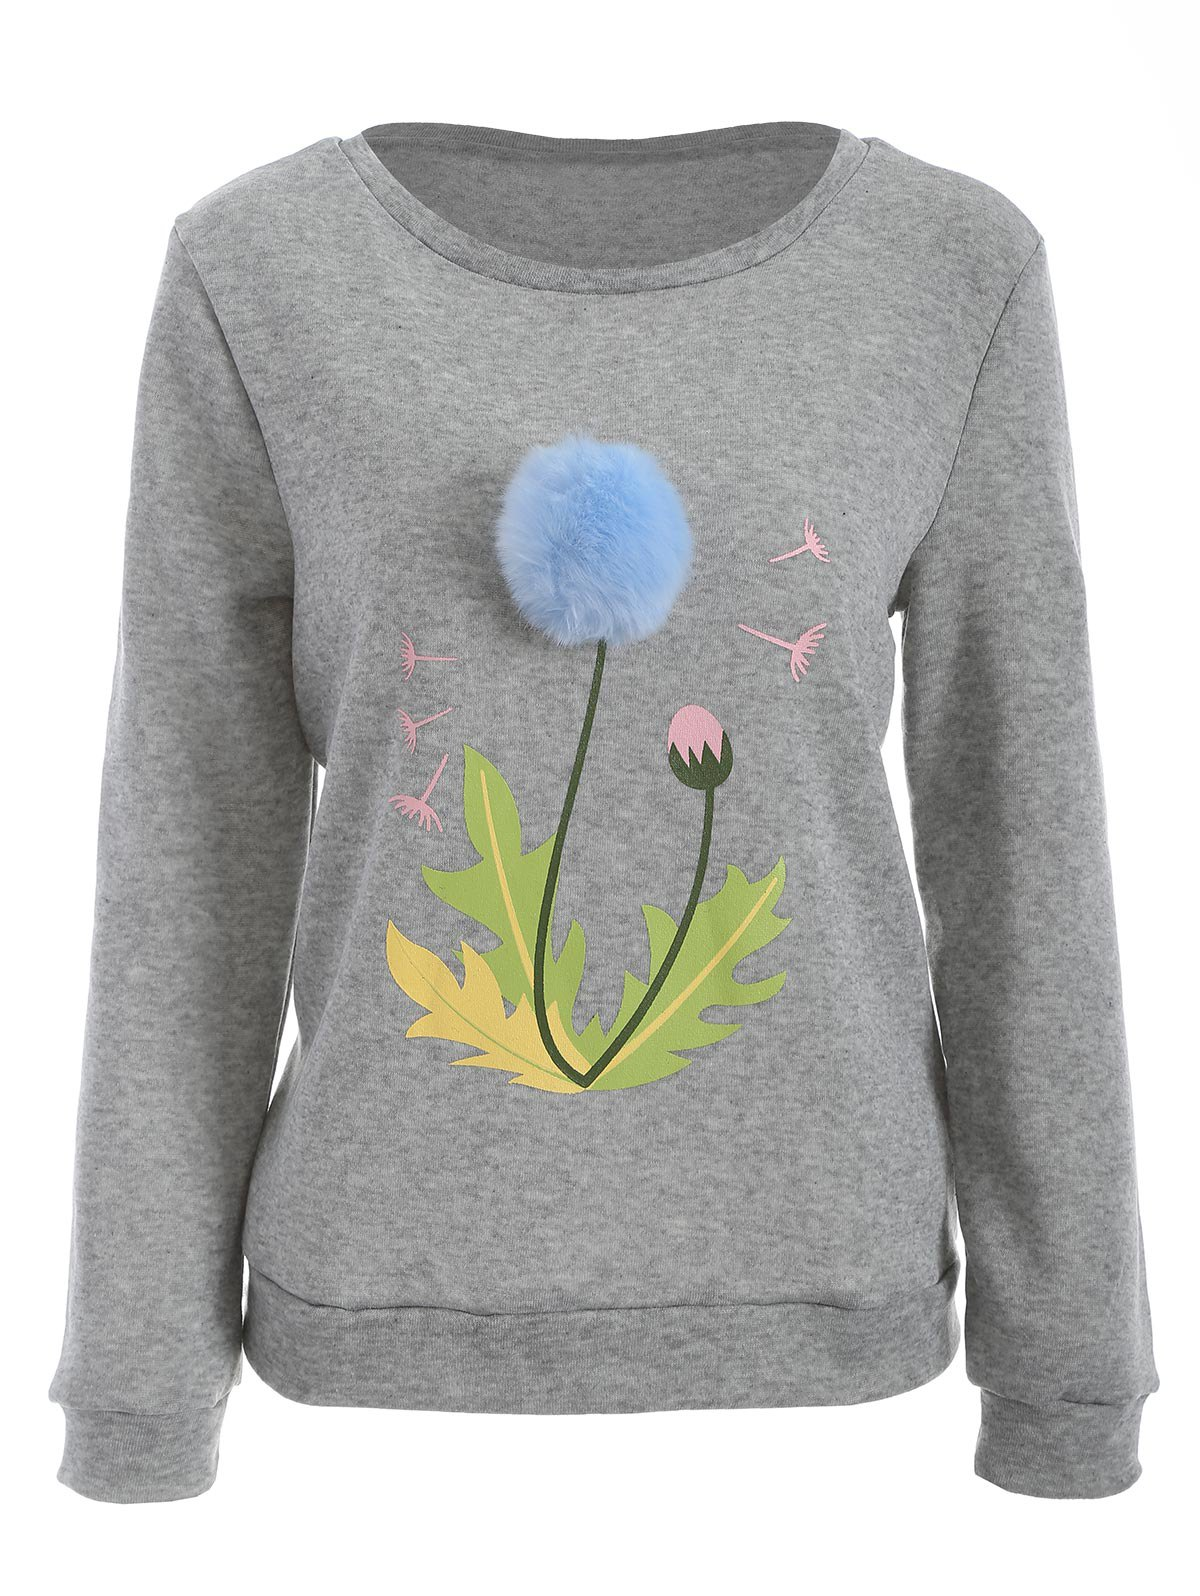 Unique Pom Ball Floral Print Sweatshirt